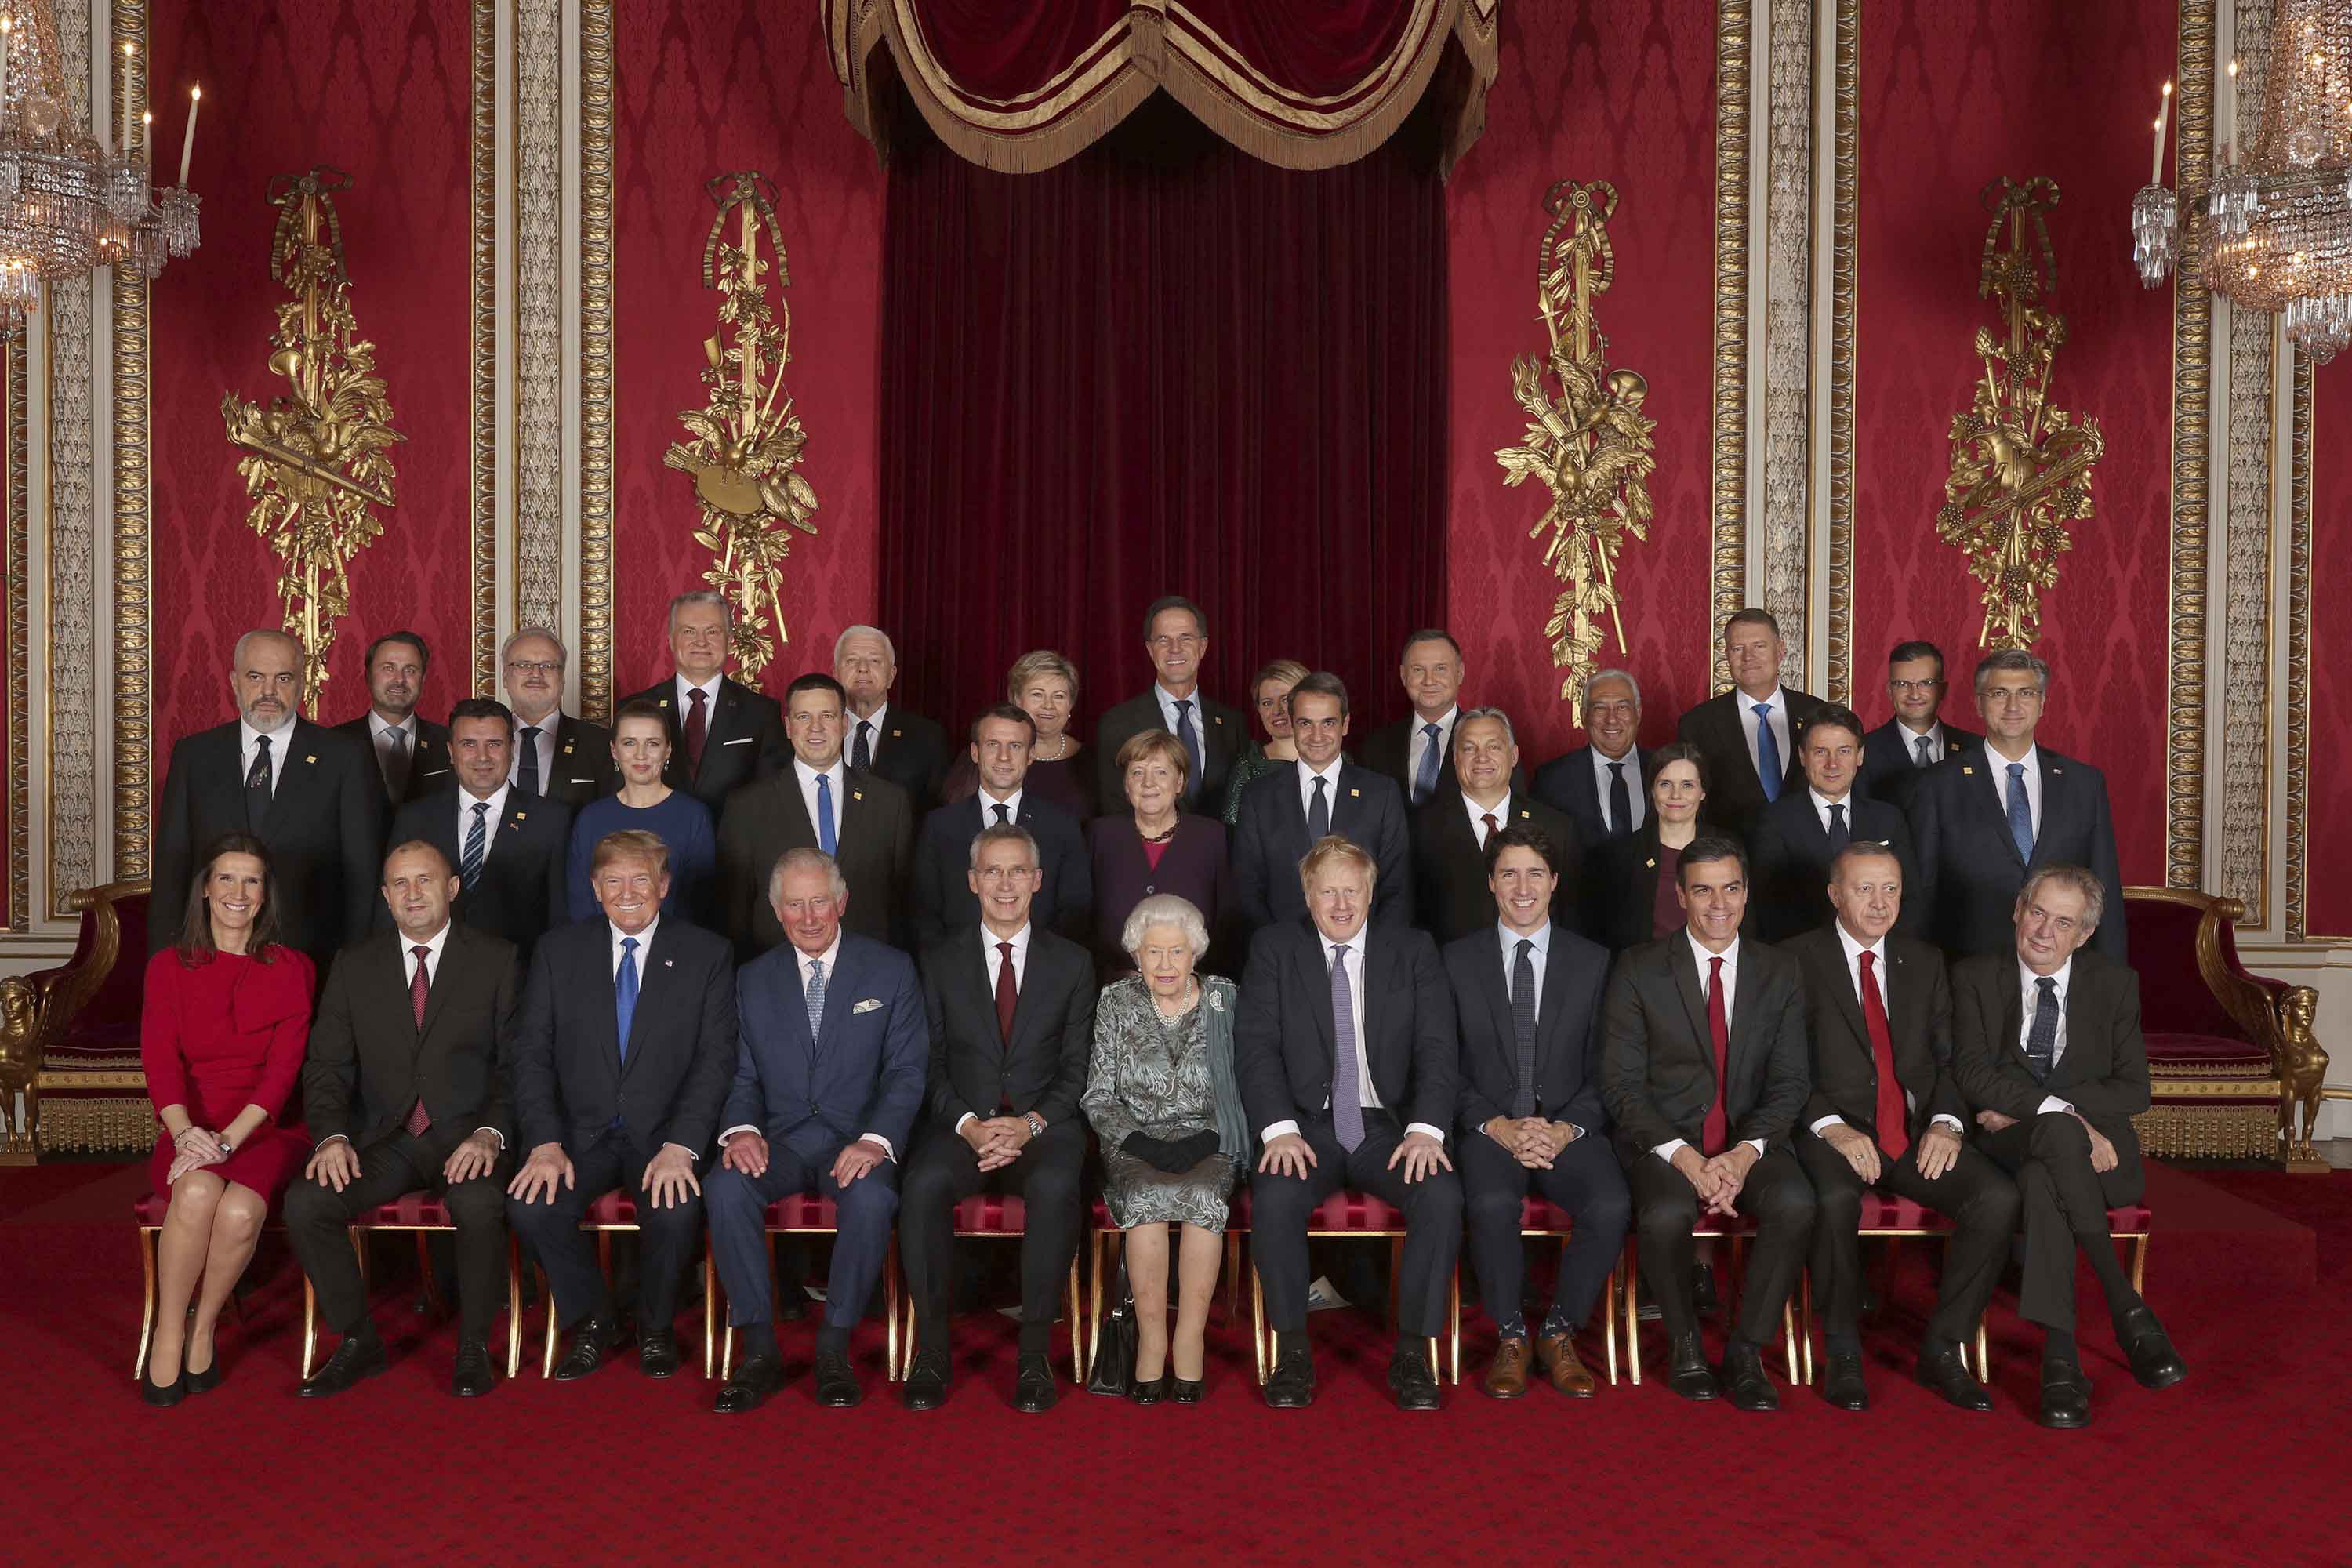 Leaders of the NATO alliance countries, and its secretary general, join Queen Elizabeth II and Prince Charles the Prince of Wales, for a group picture during a reception at Buckingham Palace in London on Tuesday. Photo: Yui Mok/Pool via AP